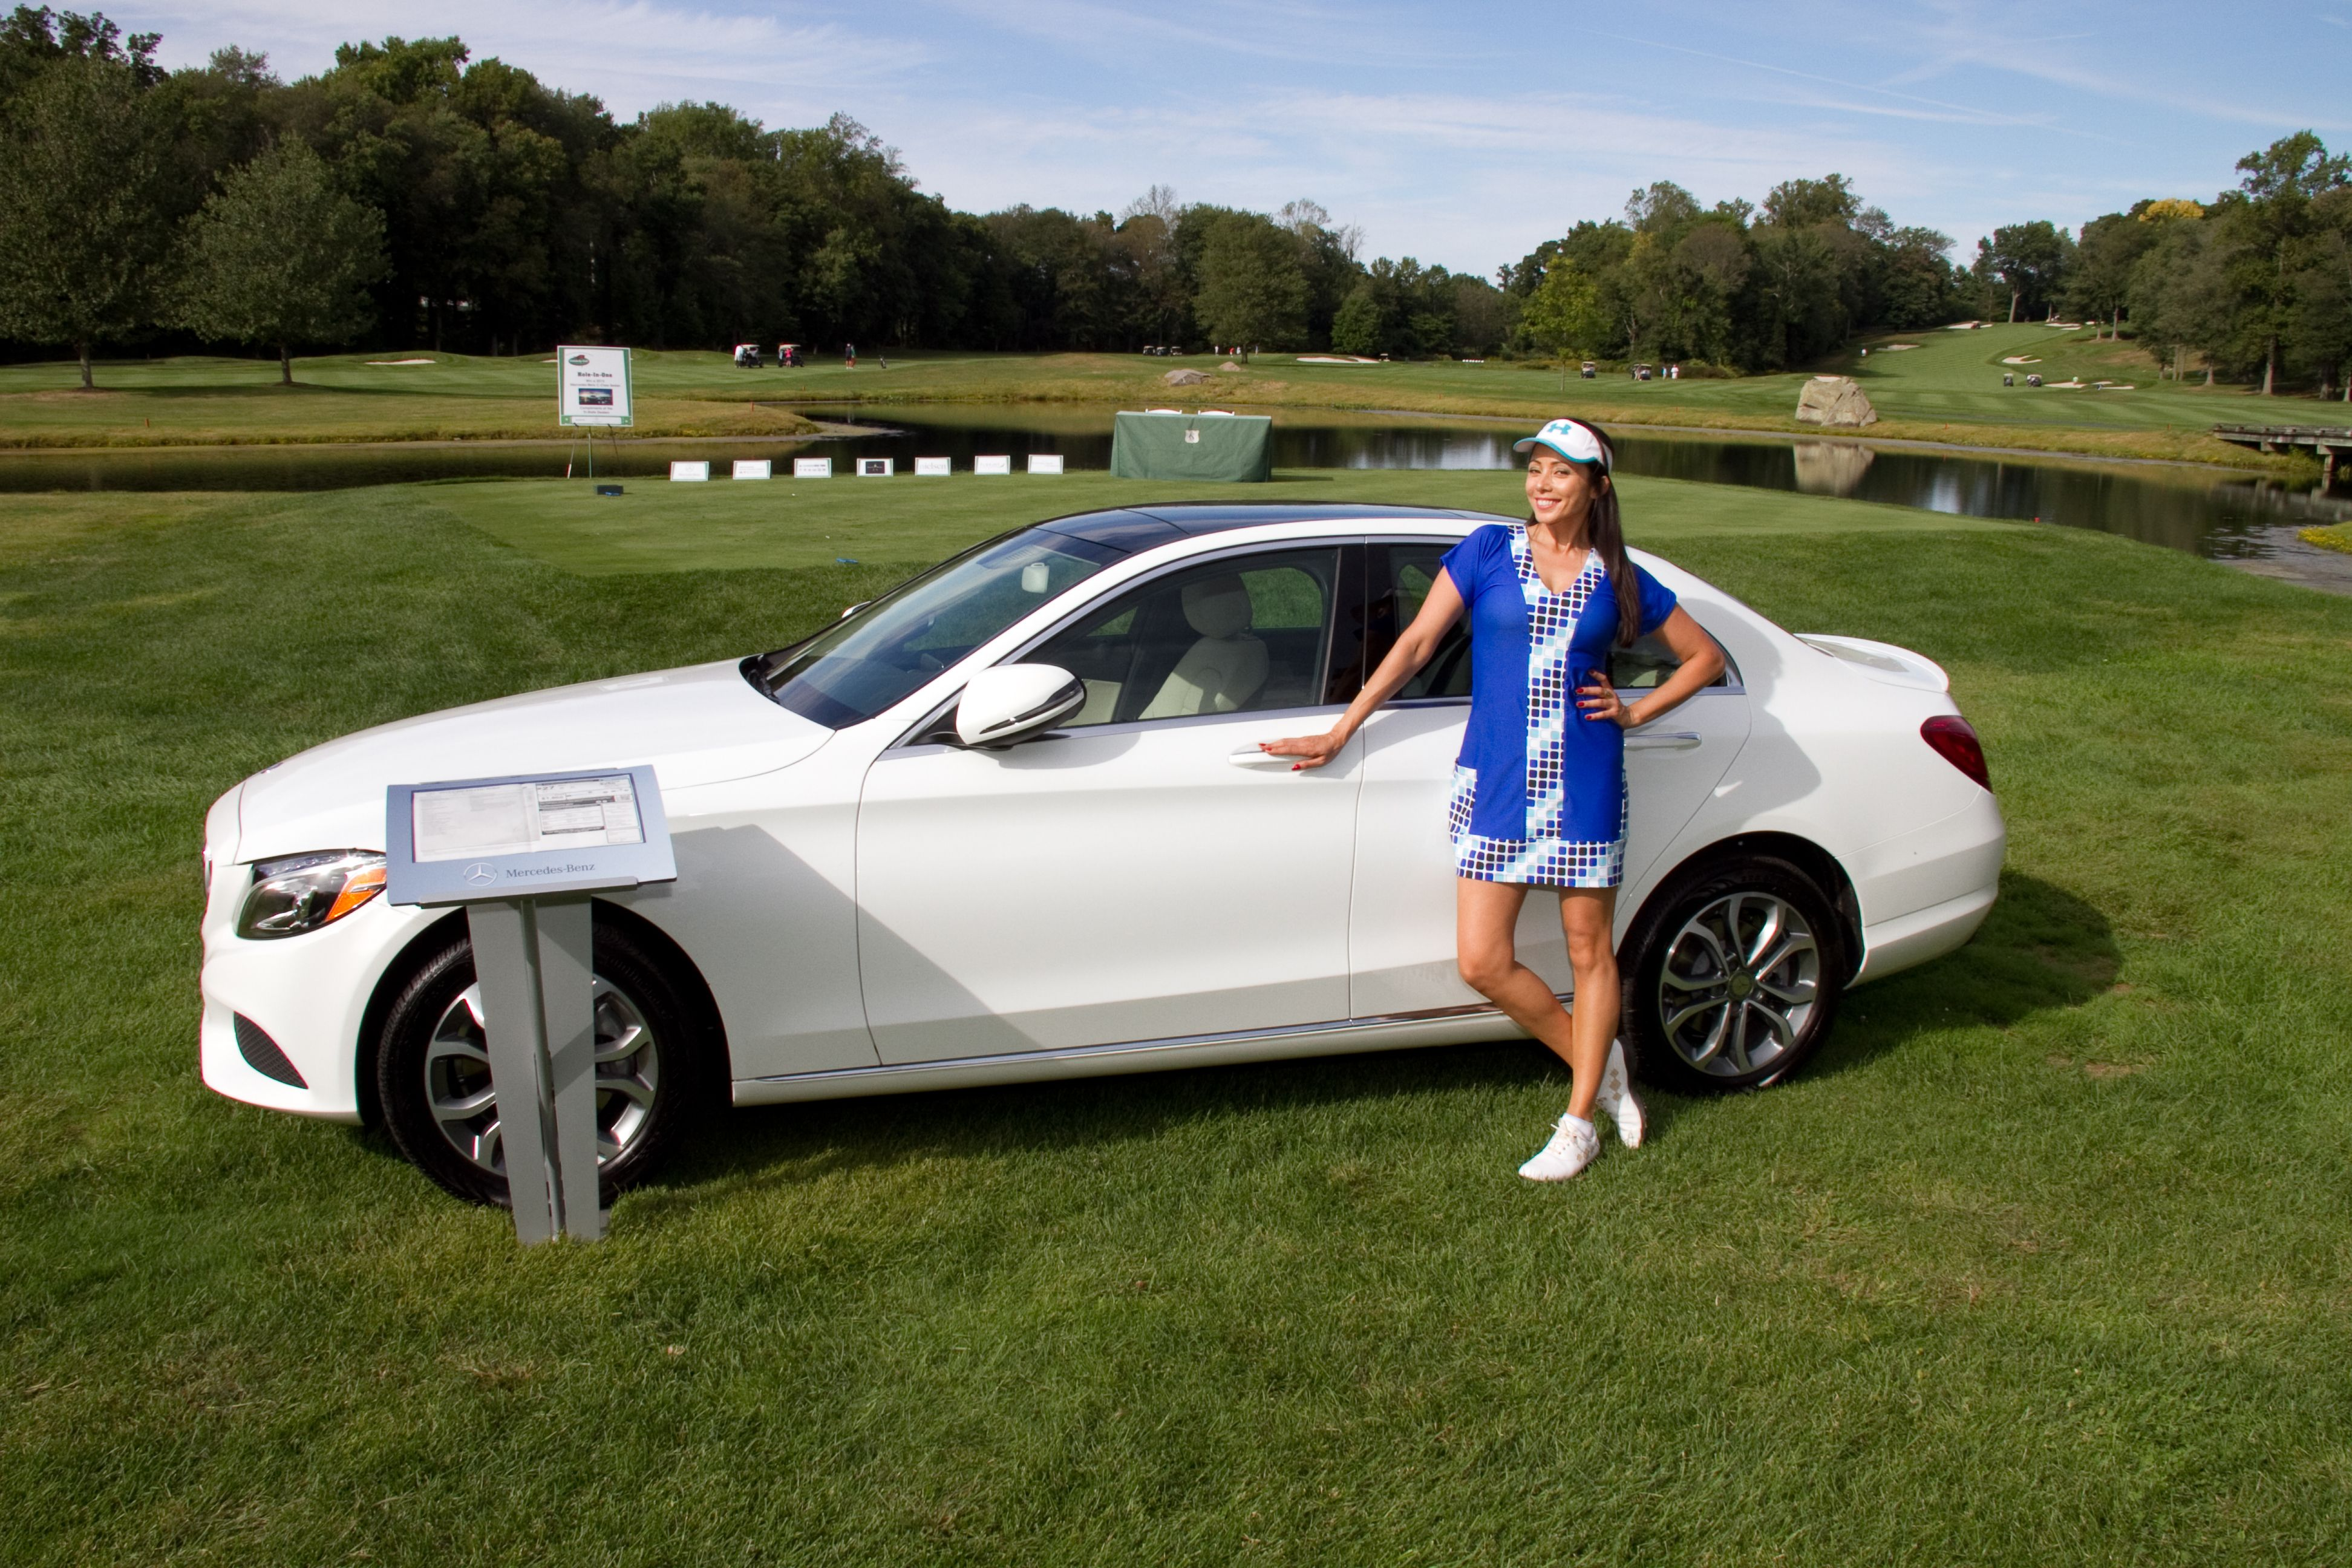 Rachel Grant at a recent Golf Outing in the Stacy II Cobalt Cubes Dress #GOLFDRESS #Golffashion #ladiesgolfdress #Bluegolfdress #Golfapparel #golfing #ladiesgolf #9ndine #9anddine #9andine #9&dine #rachelgrant